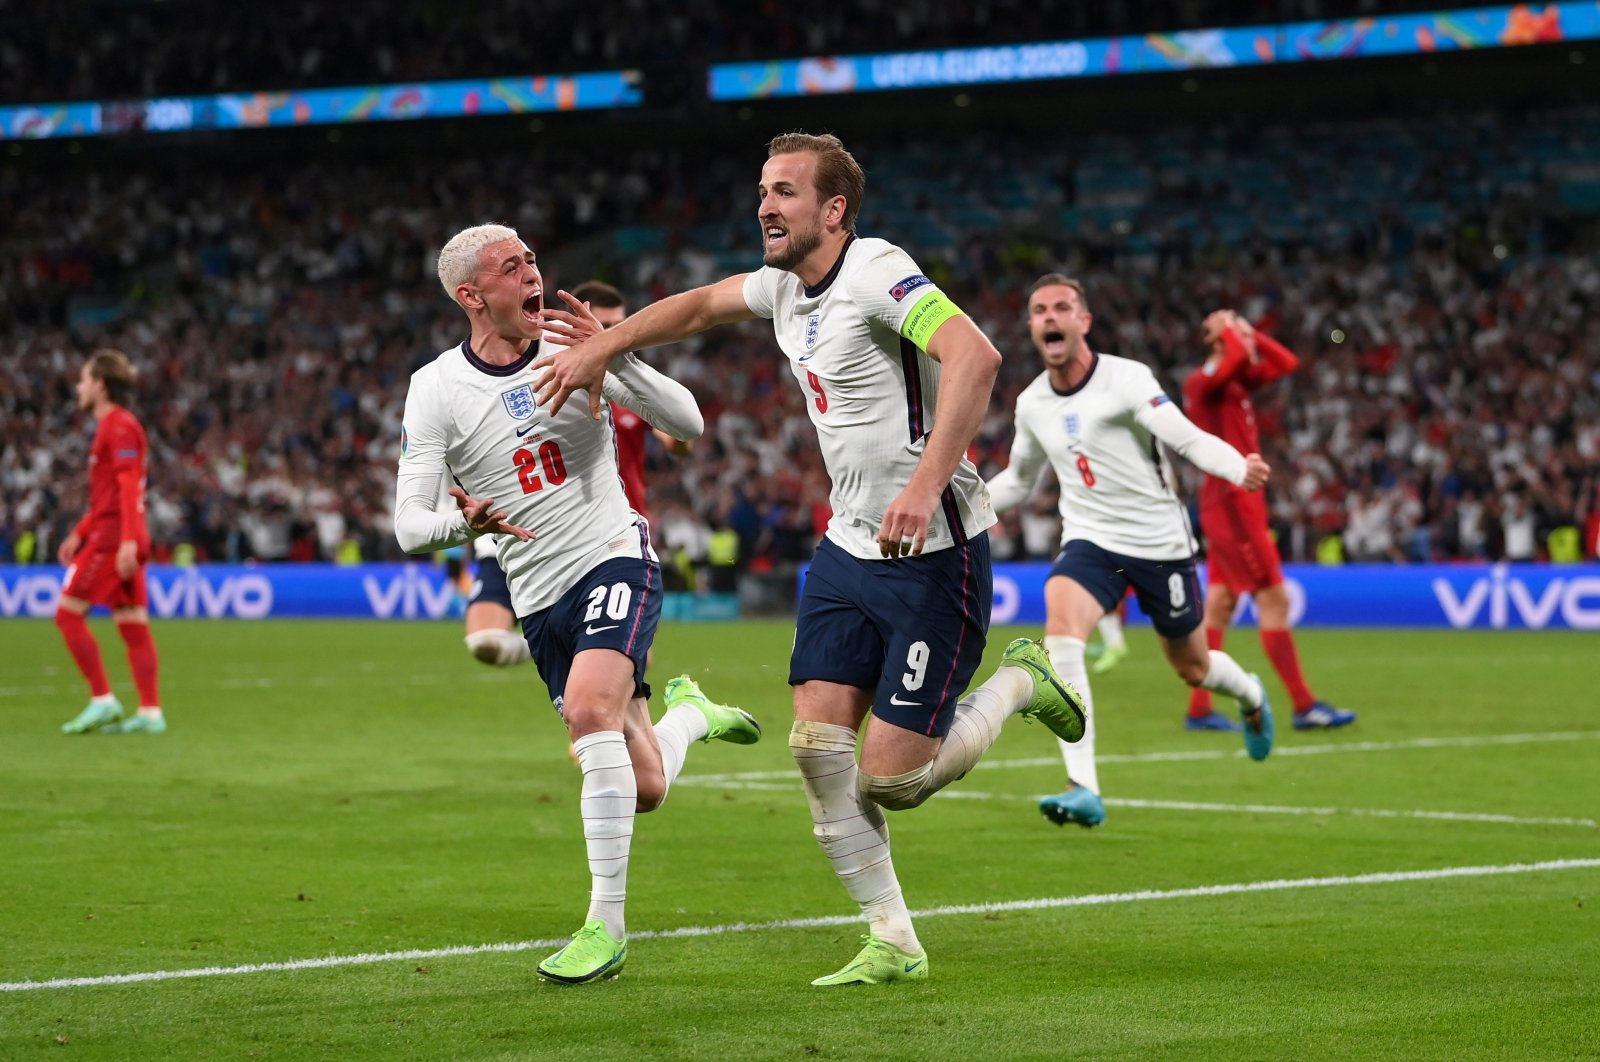 England's Harry Kane (R) celebrates scoring their second goal with Phil Foden in the Euro 2020 semifinal against Denmark at the Wembley Stadium, London, England, July 7, 2021. (Reuters Photo)